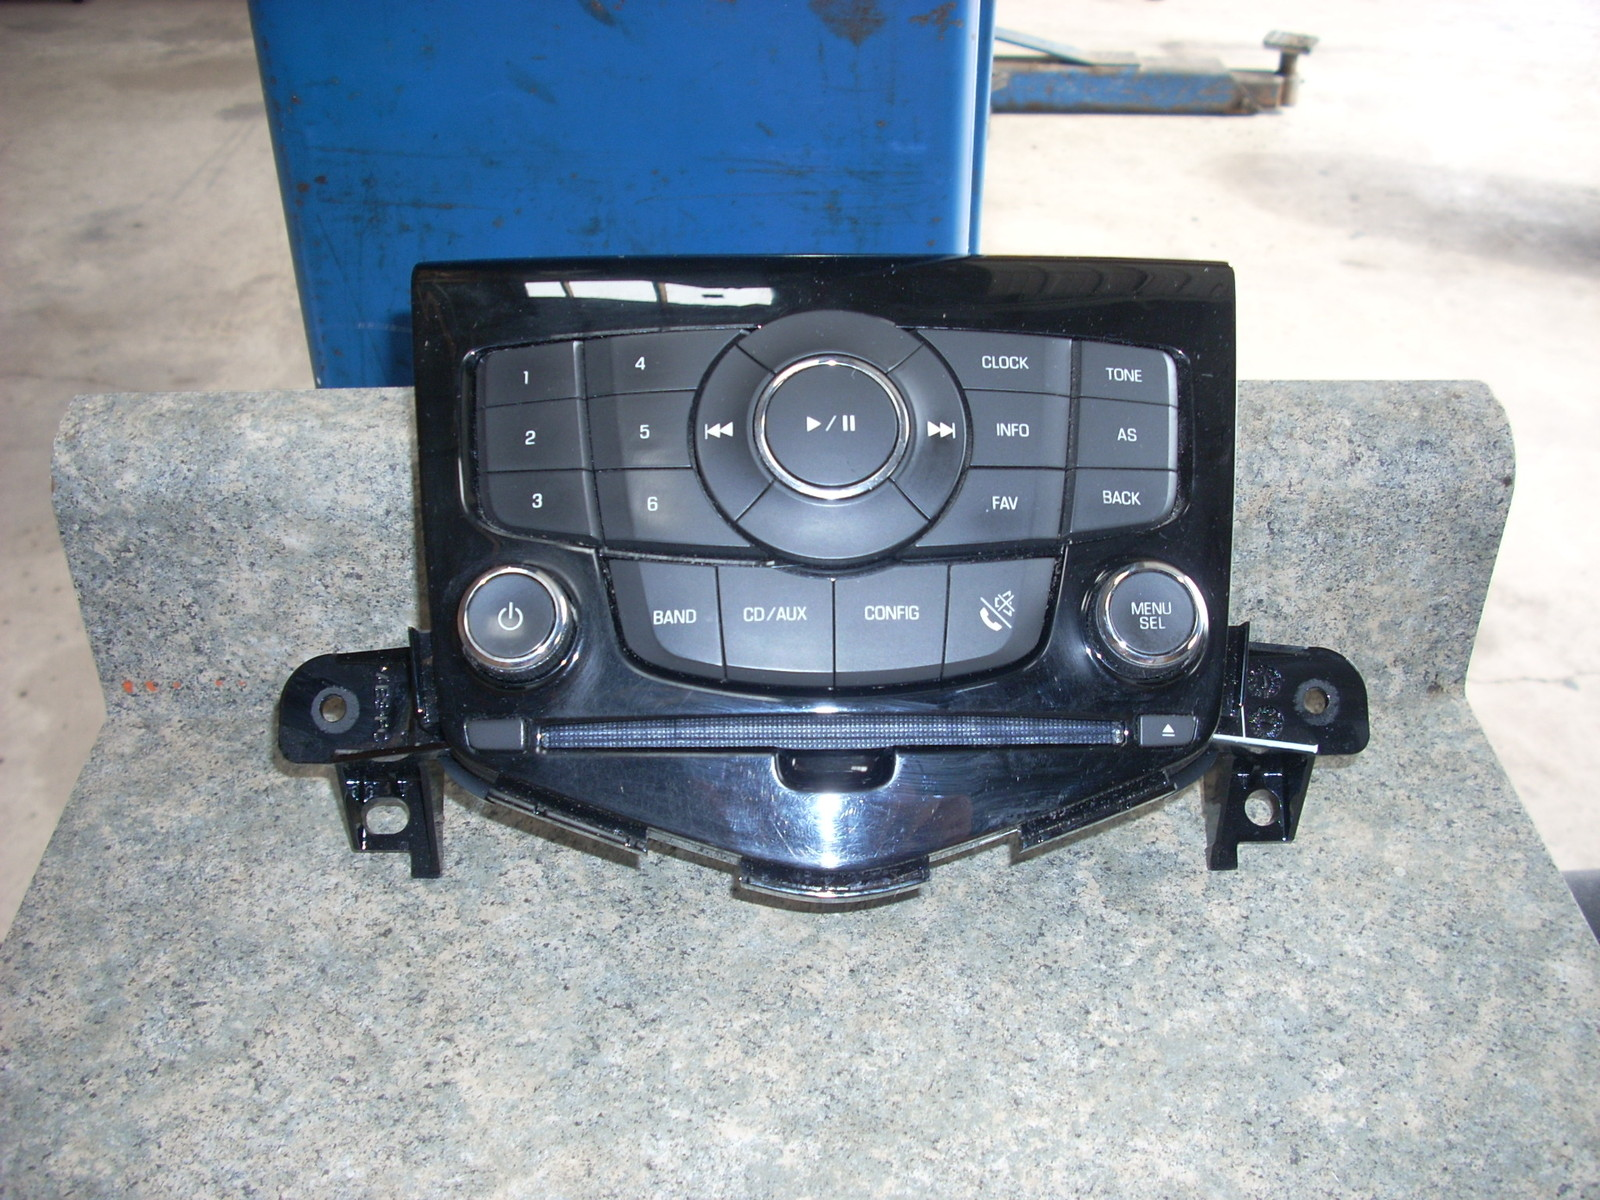 2012 CHEVROLET CRUZE RADIO CONTROLS 95914367